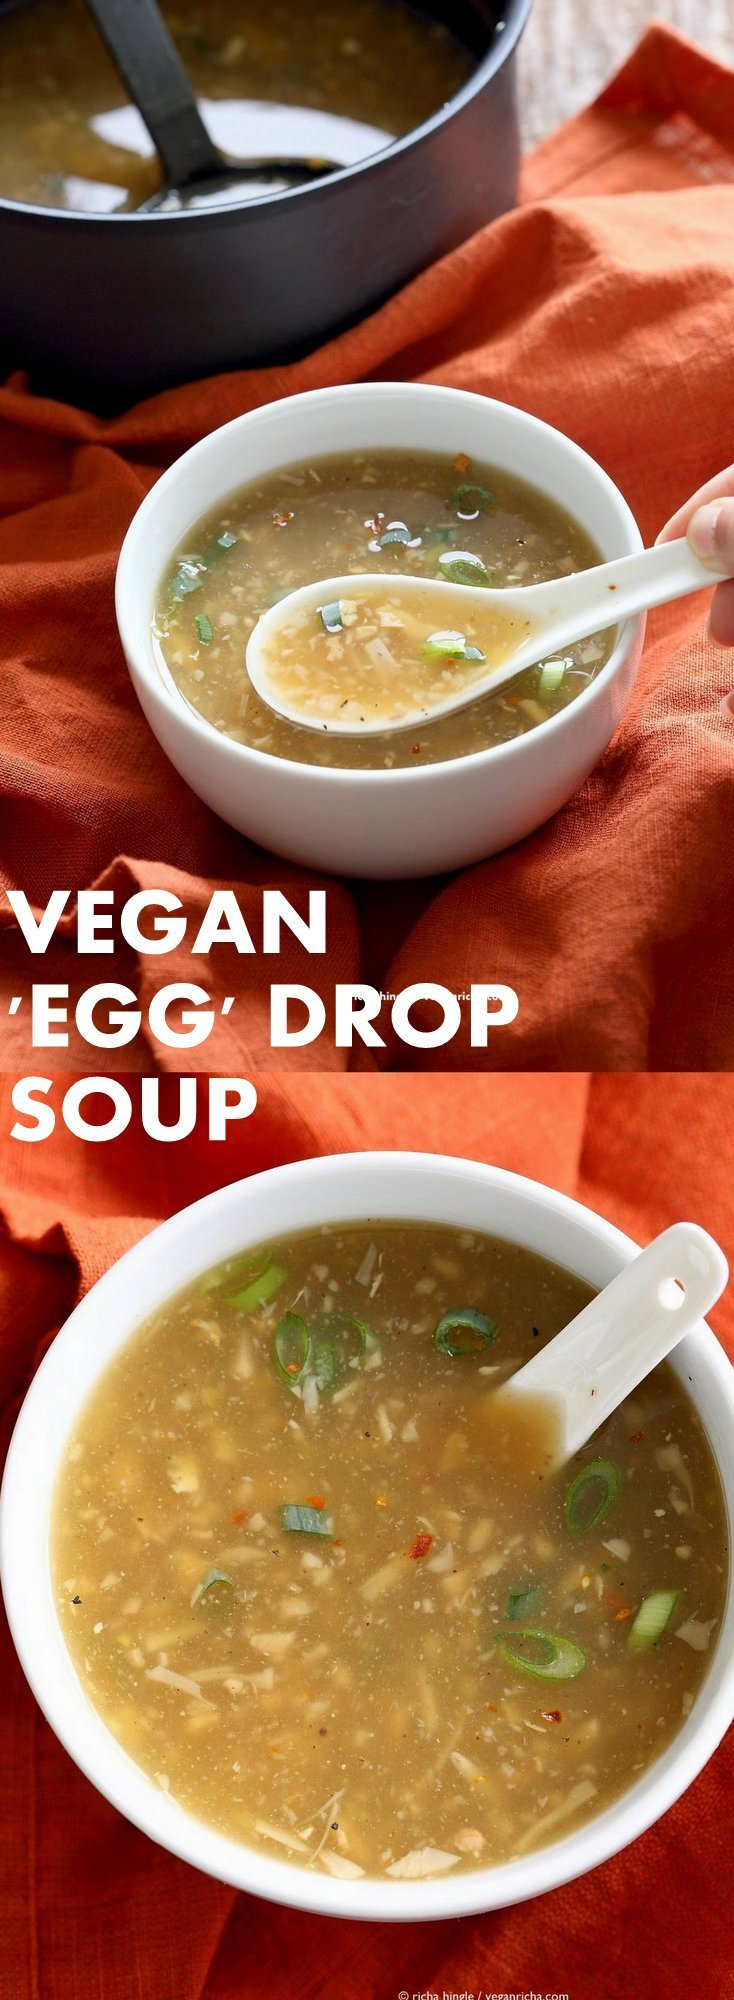 "Vegan Egg Drop Soup. Egg-less Egg drop soup with Jackfruit and Tofu. Soothing Chinese ""egg"" drop soup. Vegan Gluten-free Asian Recipe. 